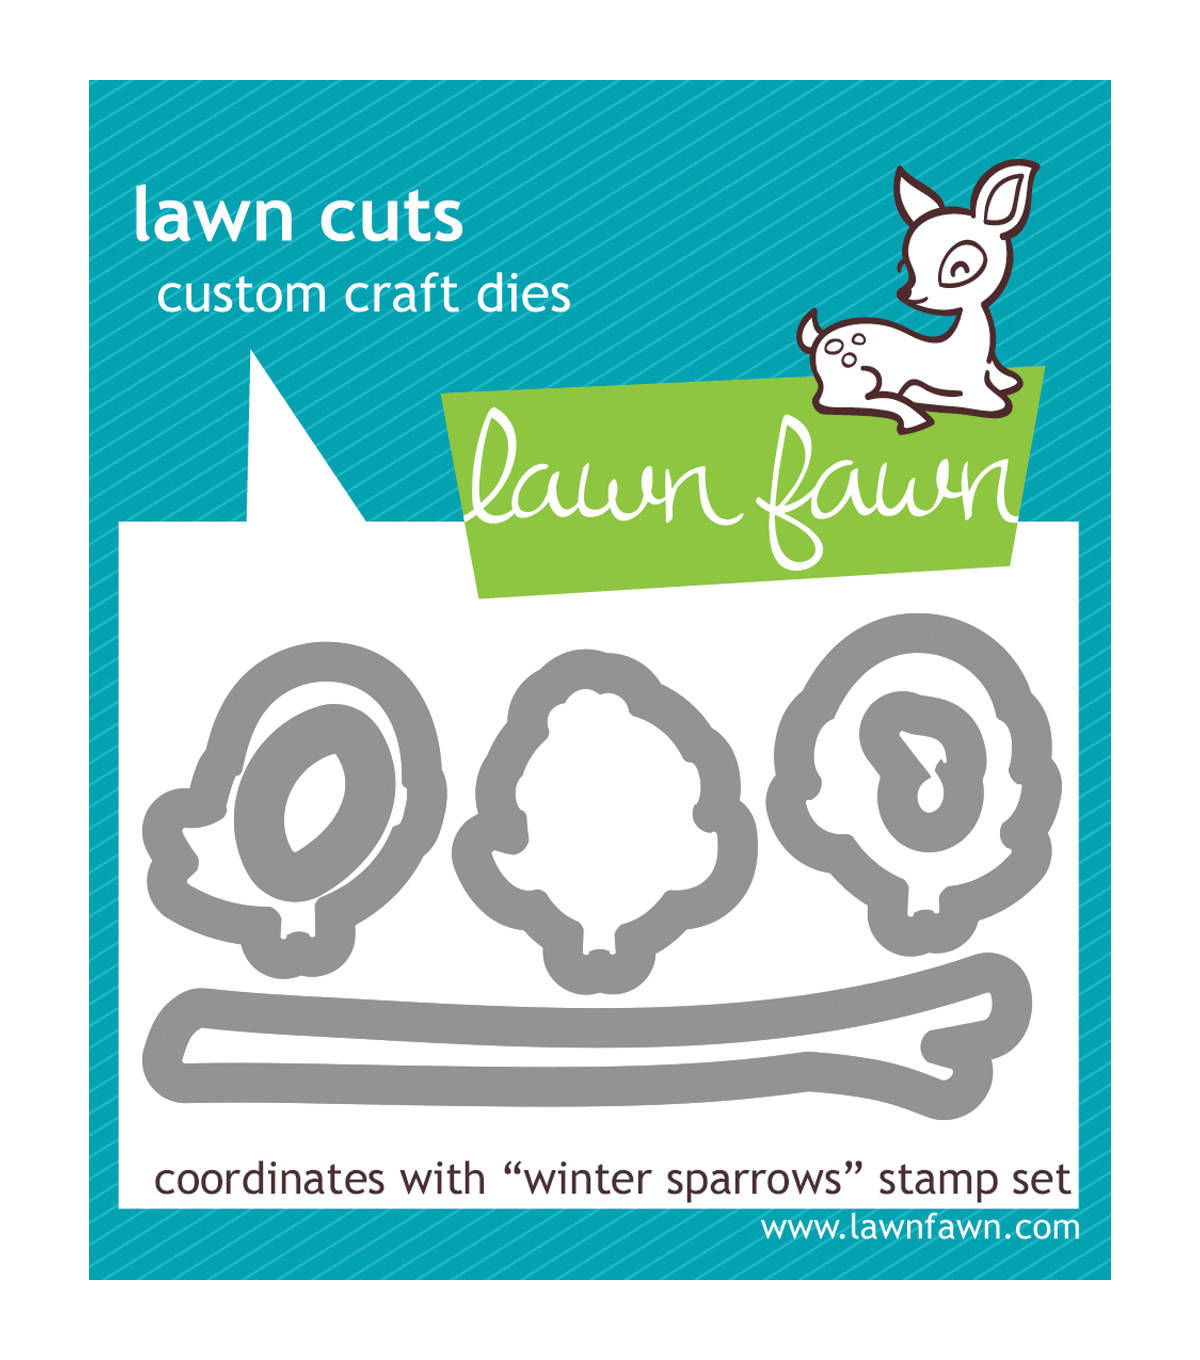 Lawn Fawn Lawn Cuts Custom Craft Die -Winter Sparrows